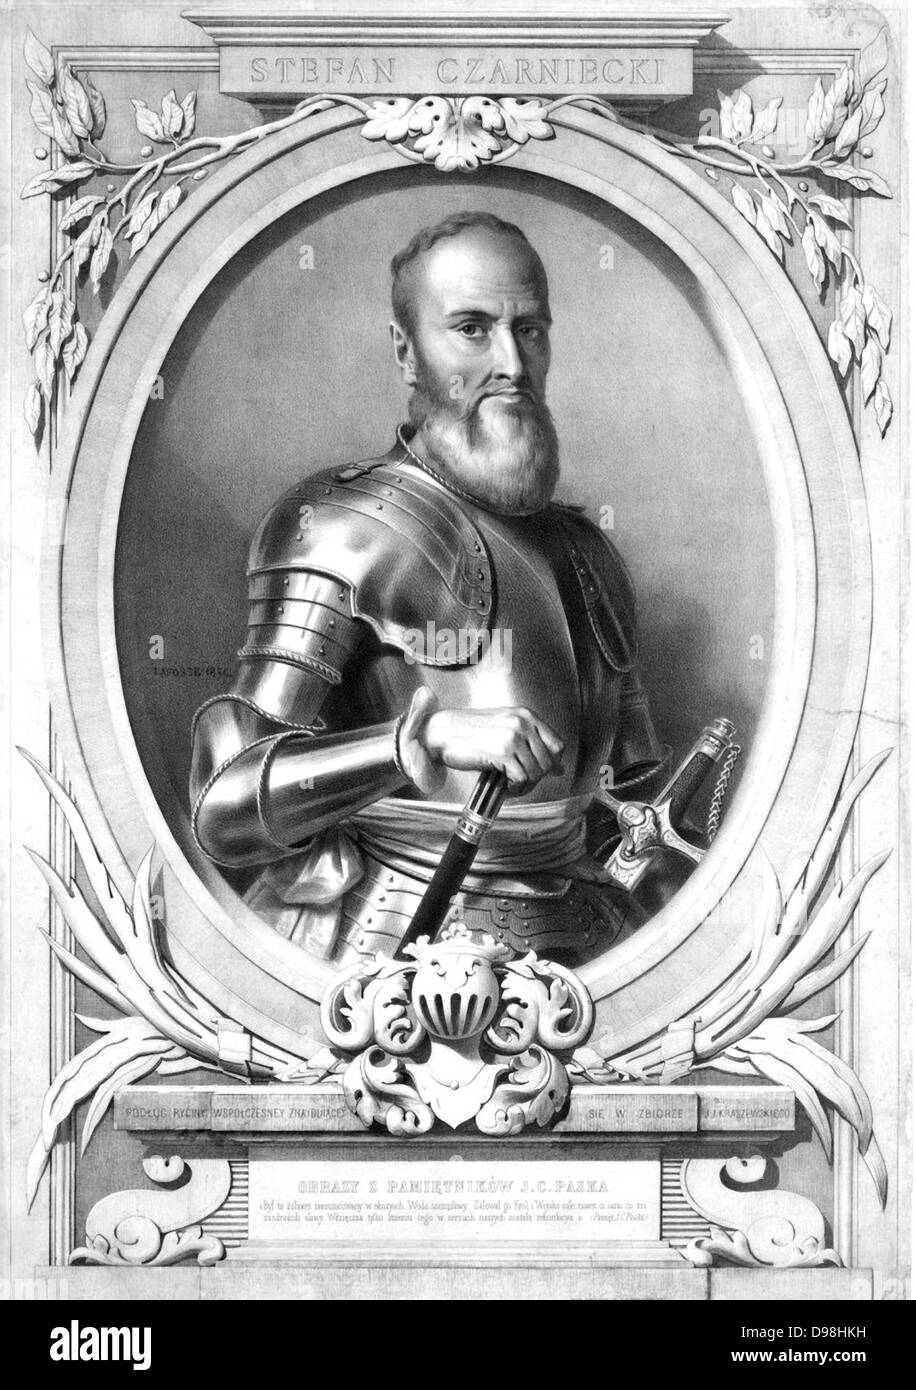 Stefan Czarniecki (1599-1665) Polish Lithuanian Commonwealth general and nobleman. - Stock Image